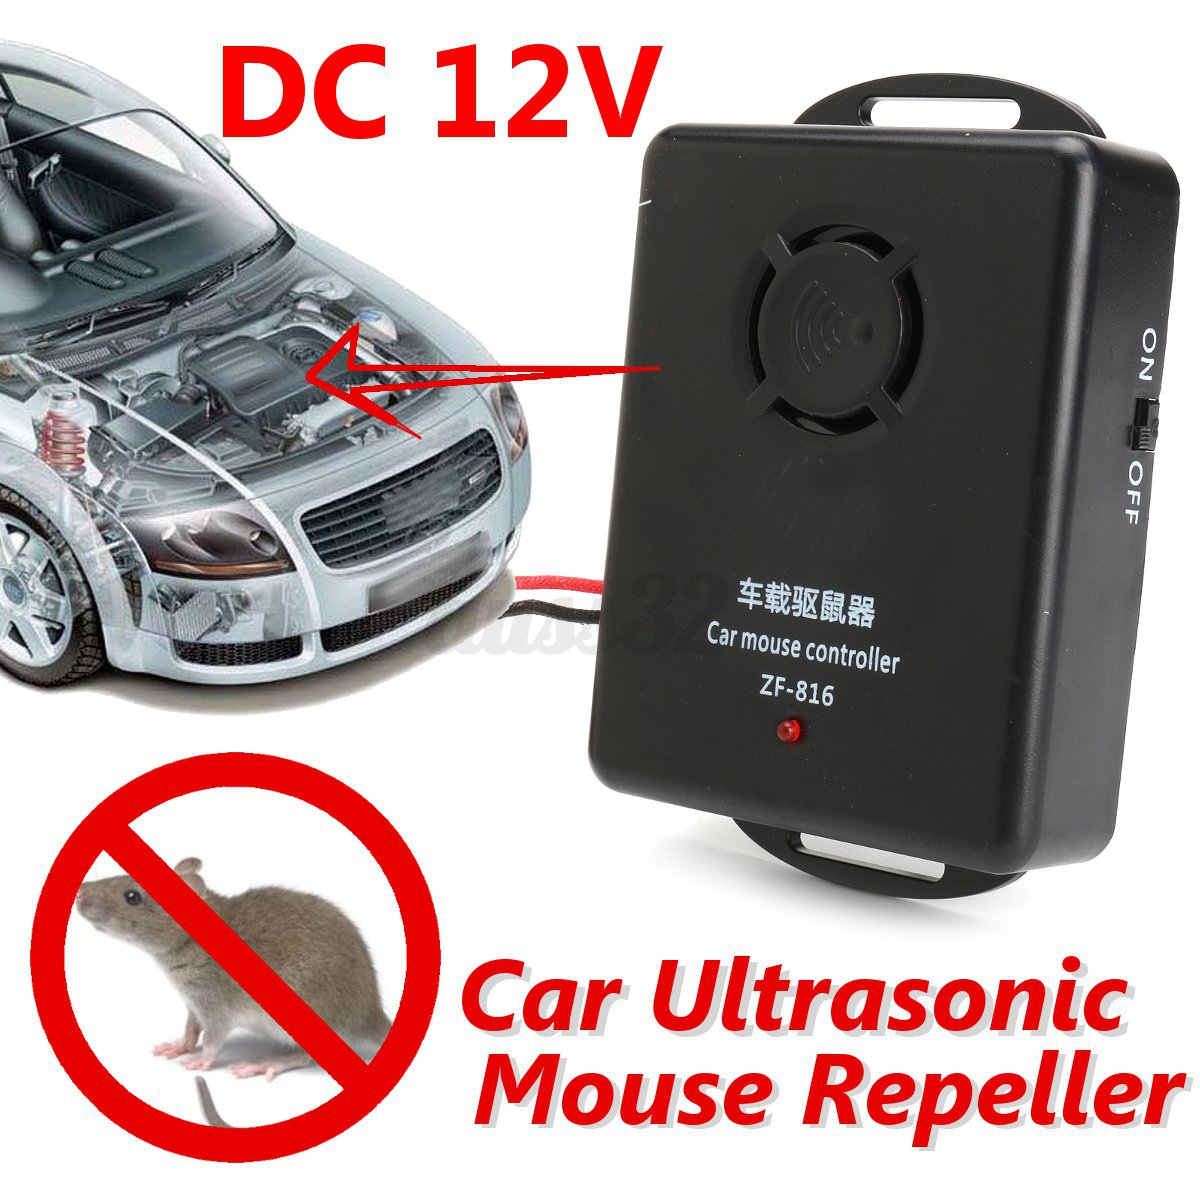 12v ultrason lectronique anti martre souris r pulsif rat voiture auto rongeur ebay. Black Bedroom Furniture Sets. Home Design Ideas